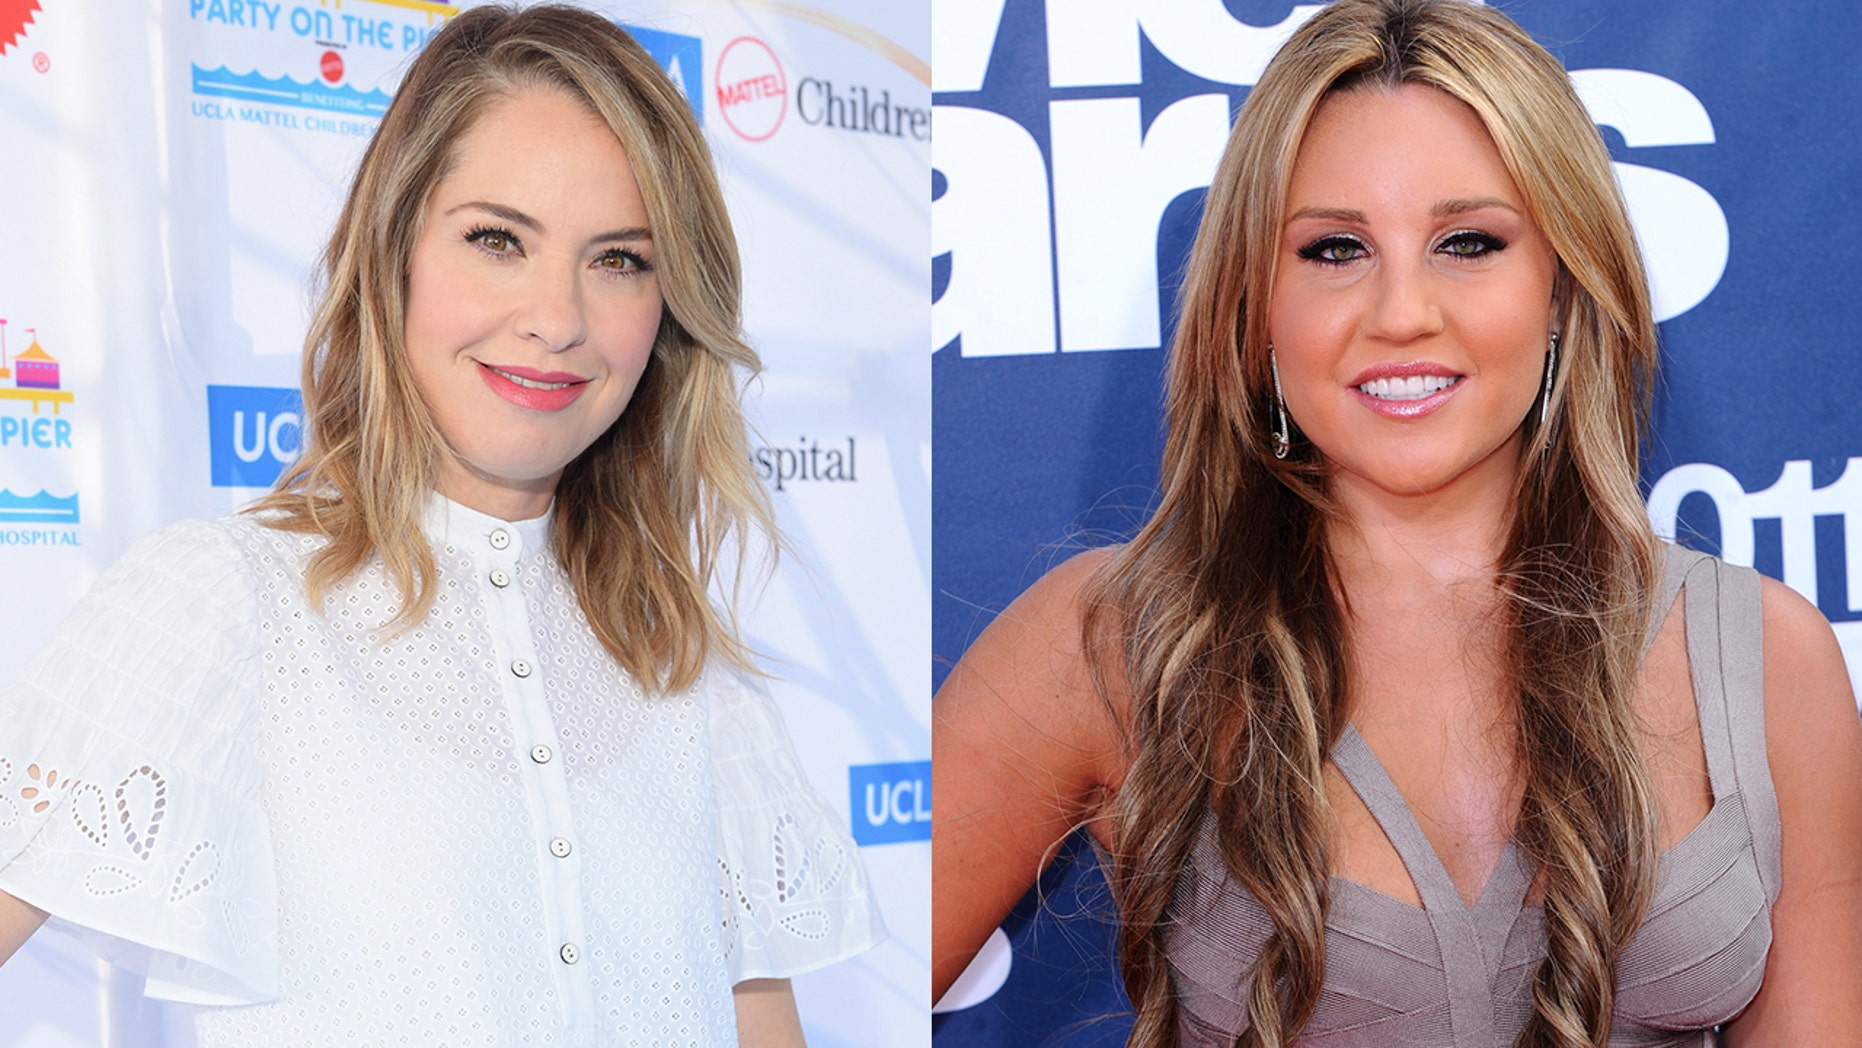 Leslie Grossman claims Amanda Bynes is serious about getting back into show business.